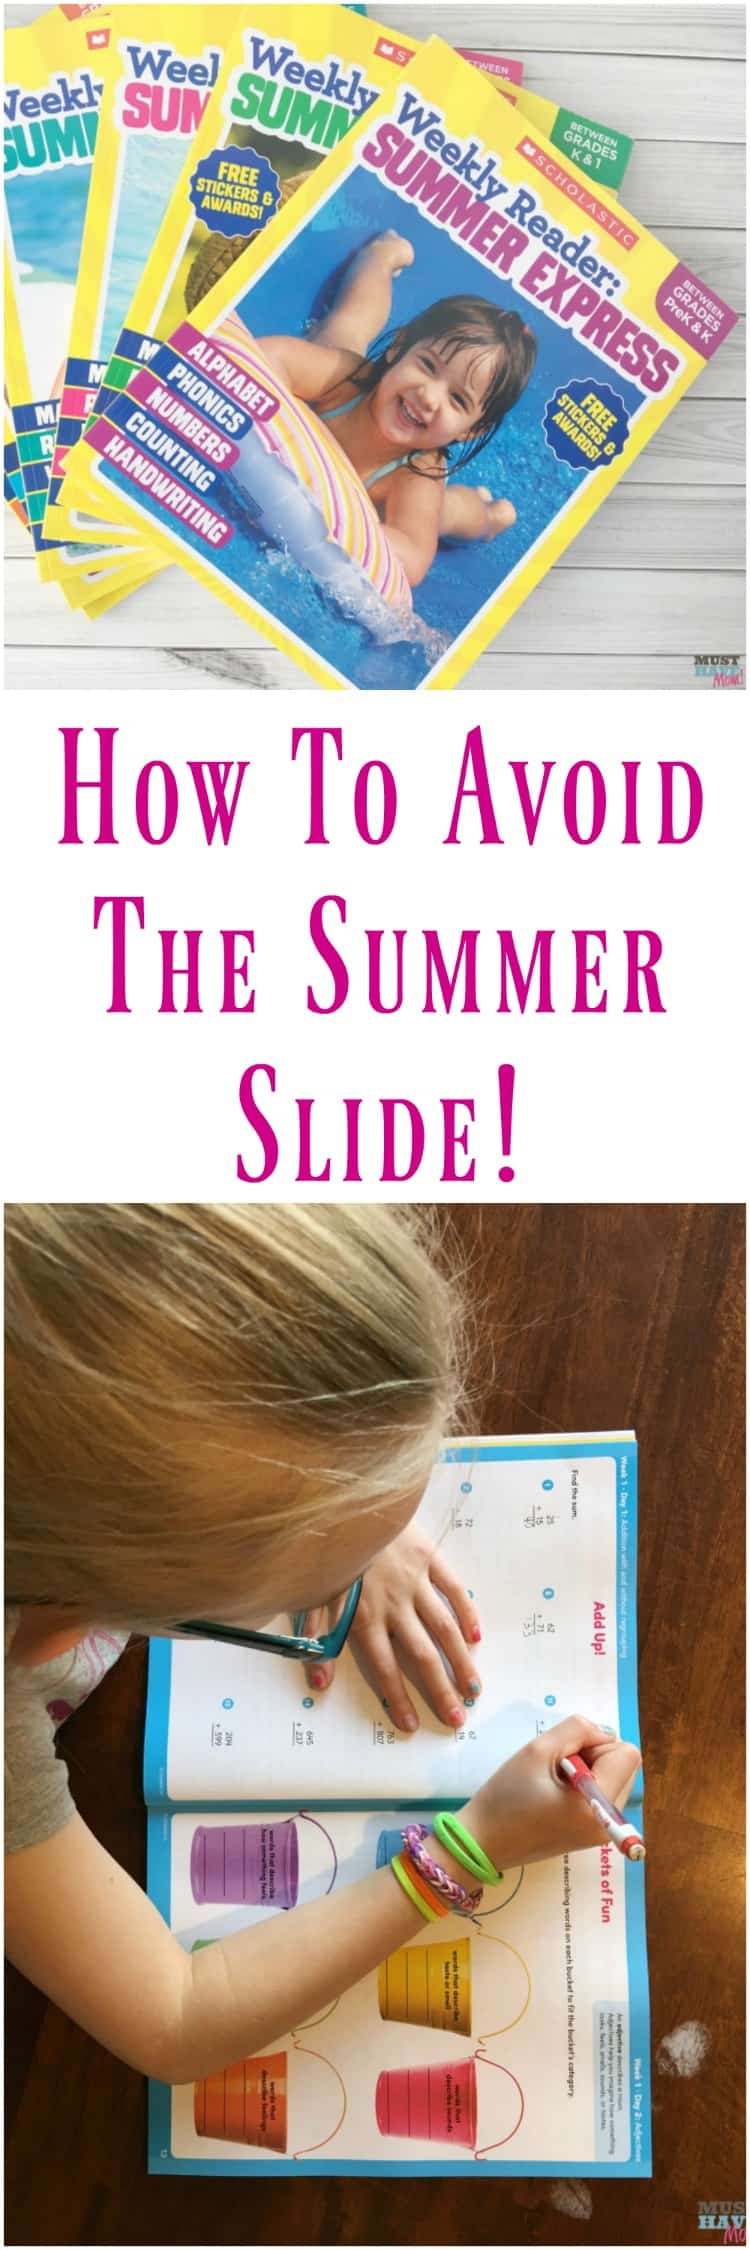 How to avoid the summer slide! Scholastic Weekly Reader Summer Express program helps kids learn all summer and not forget what they learned during the school year!